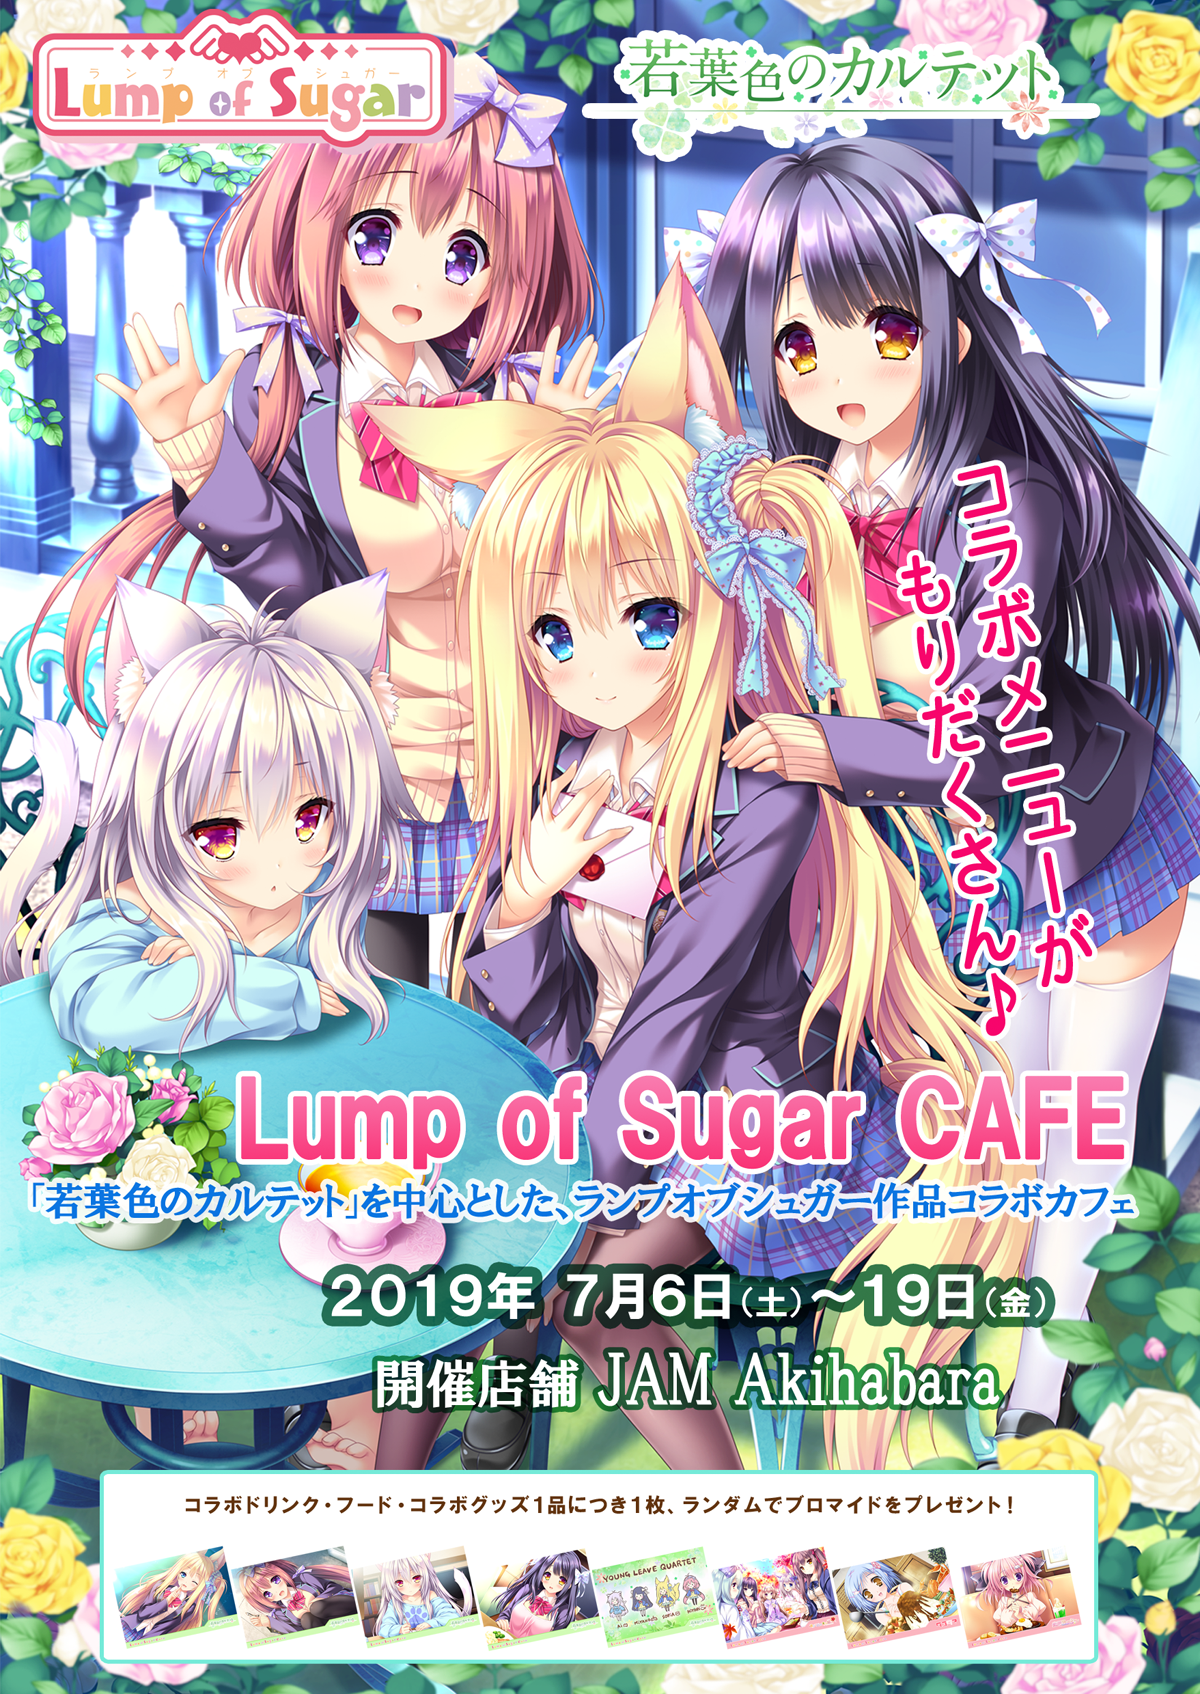 Lump of Sugar CAFE